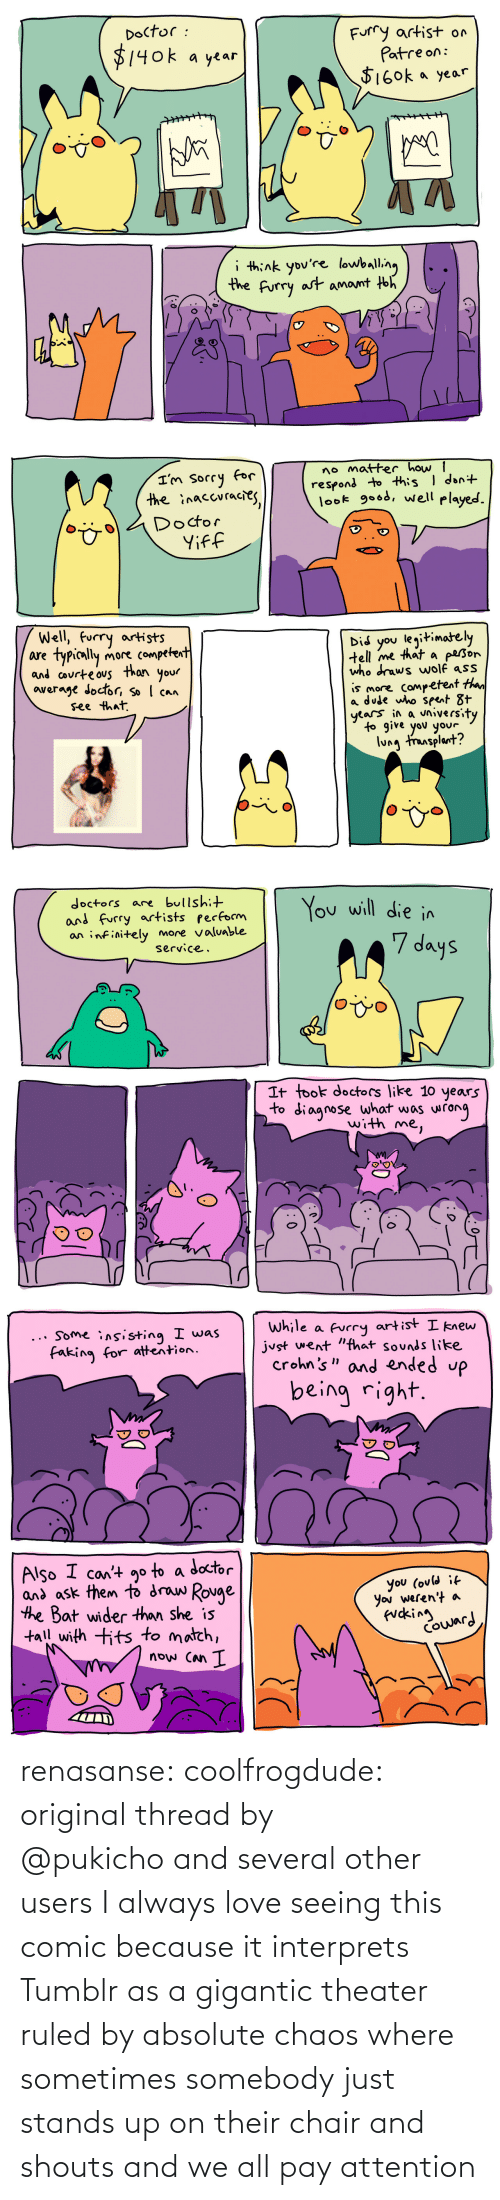 Chair: renasanse:  coolfrogdude: original thread by @pukicho and several other users I always love seeing this comic because it interprets Tumblr as a gigantic theater ruled by absolute chaos where sometimes somebody just stands up on their chair and shouts and we all pay attention